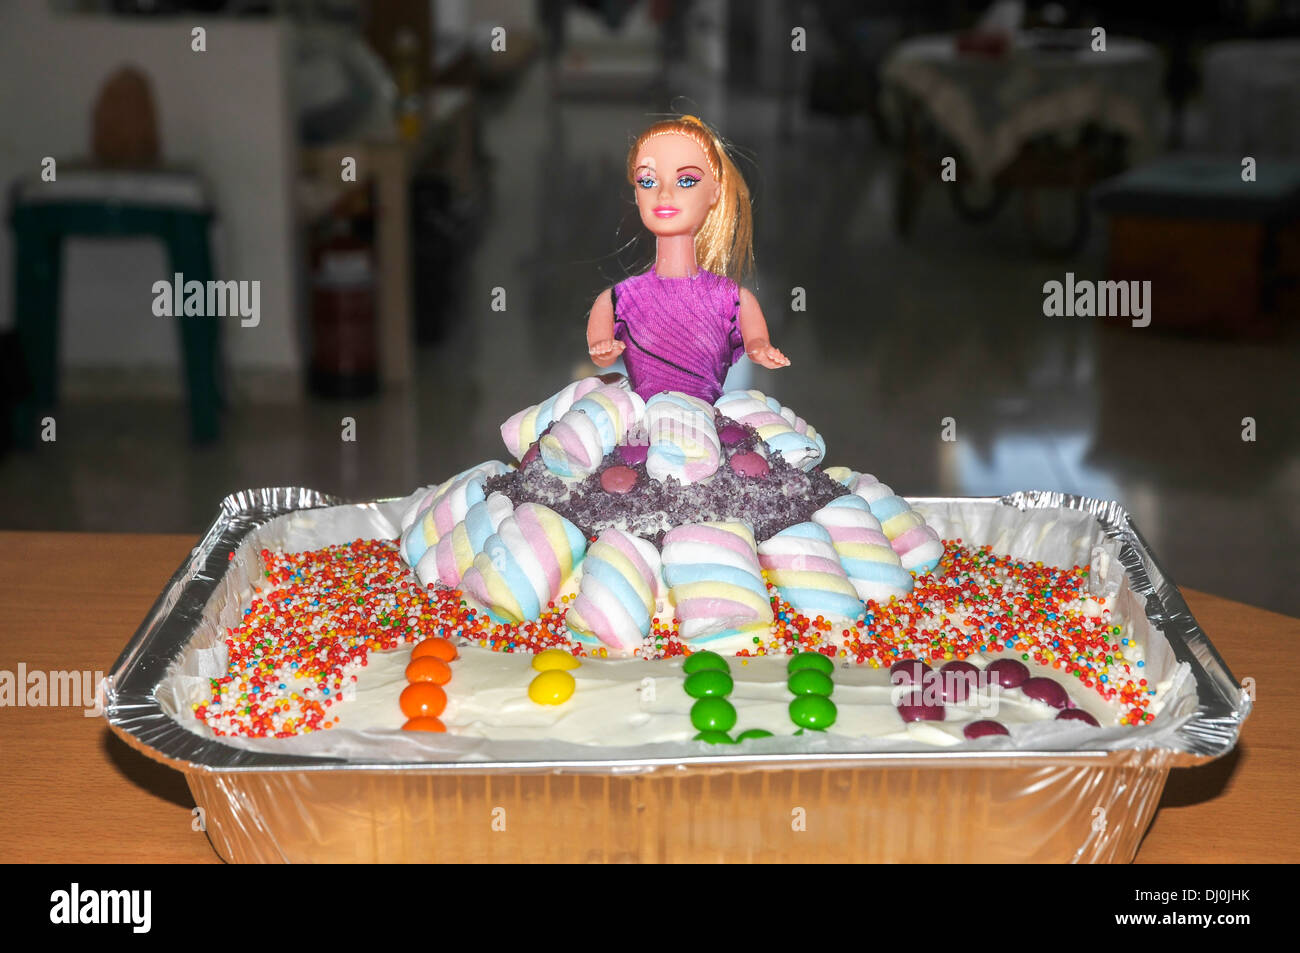 Barbie Doll Birthday Cake Decorated With Smarties And Hundreds Thousands